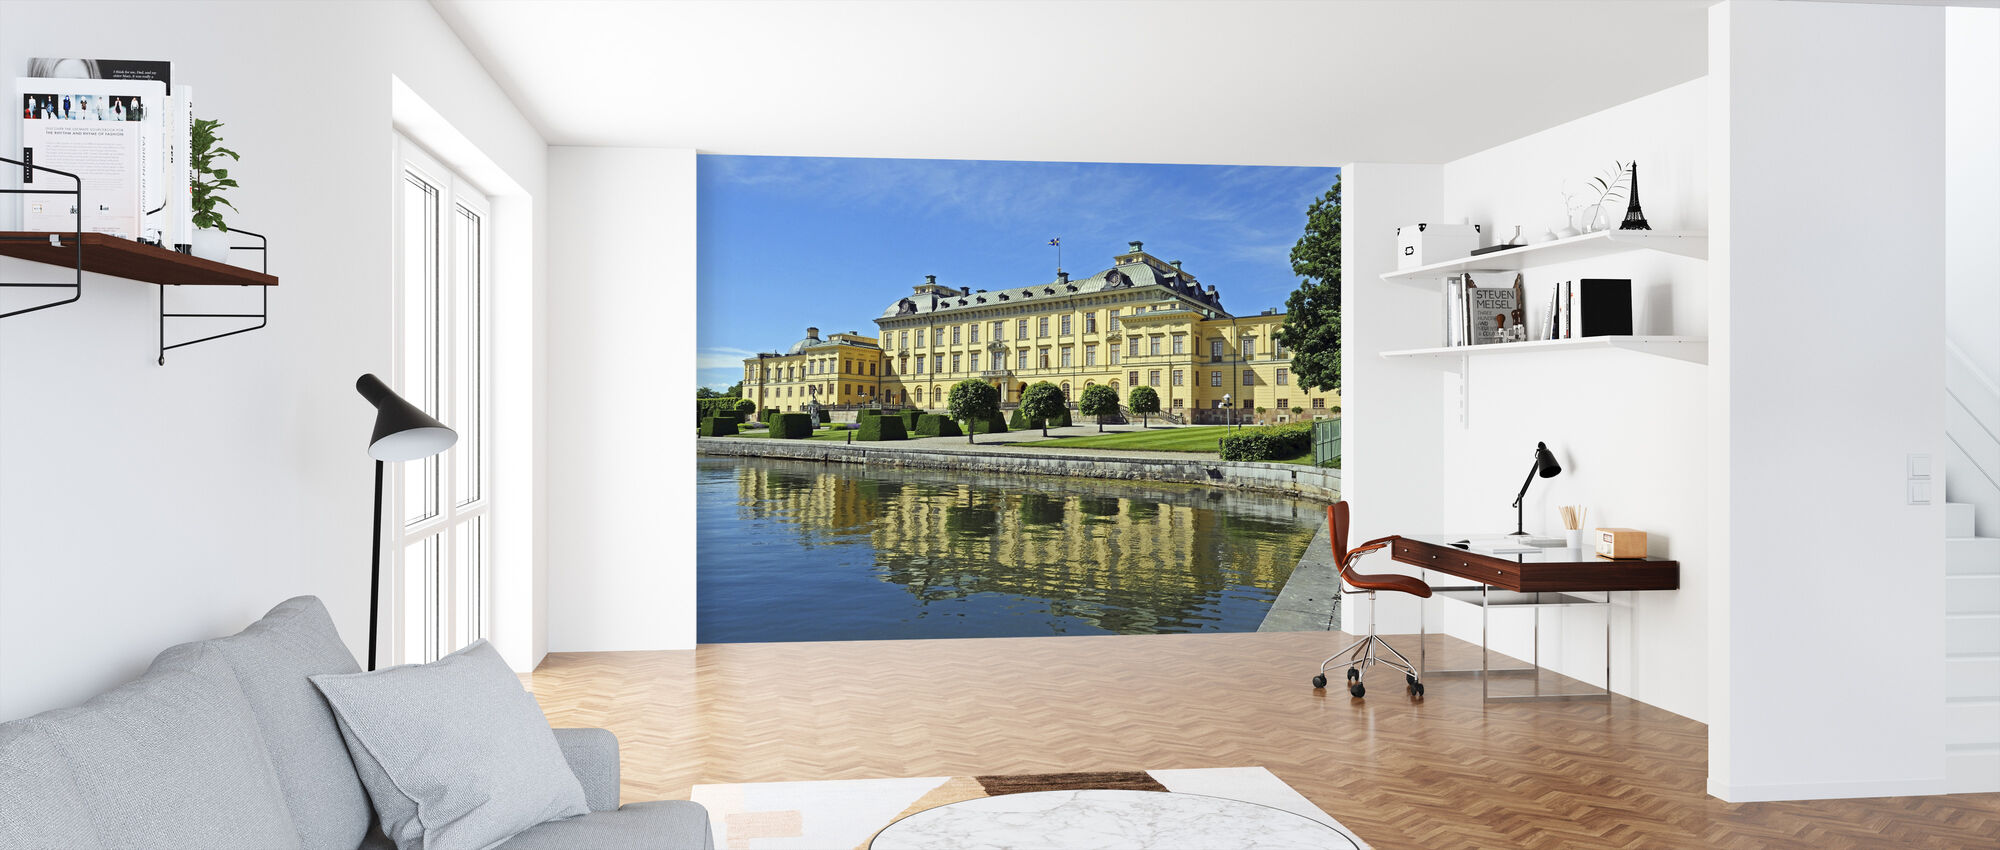 The Royal Palace - Wallpaper - Office